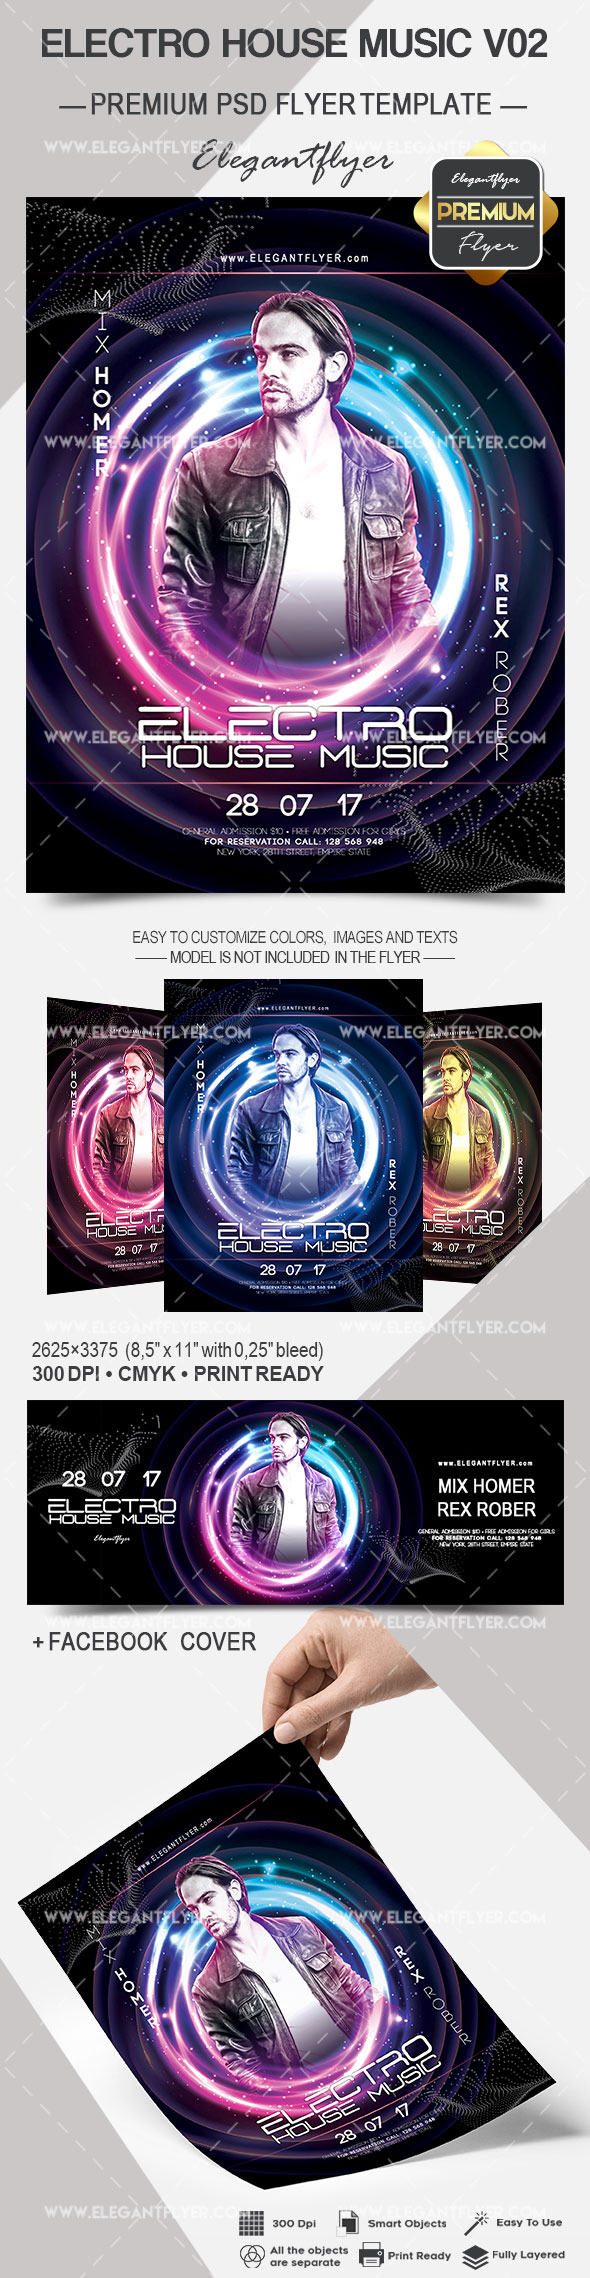 Electro House Music V02 – Flyer PSD Template